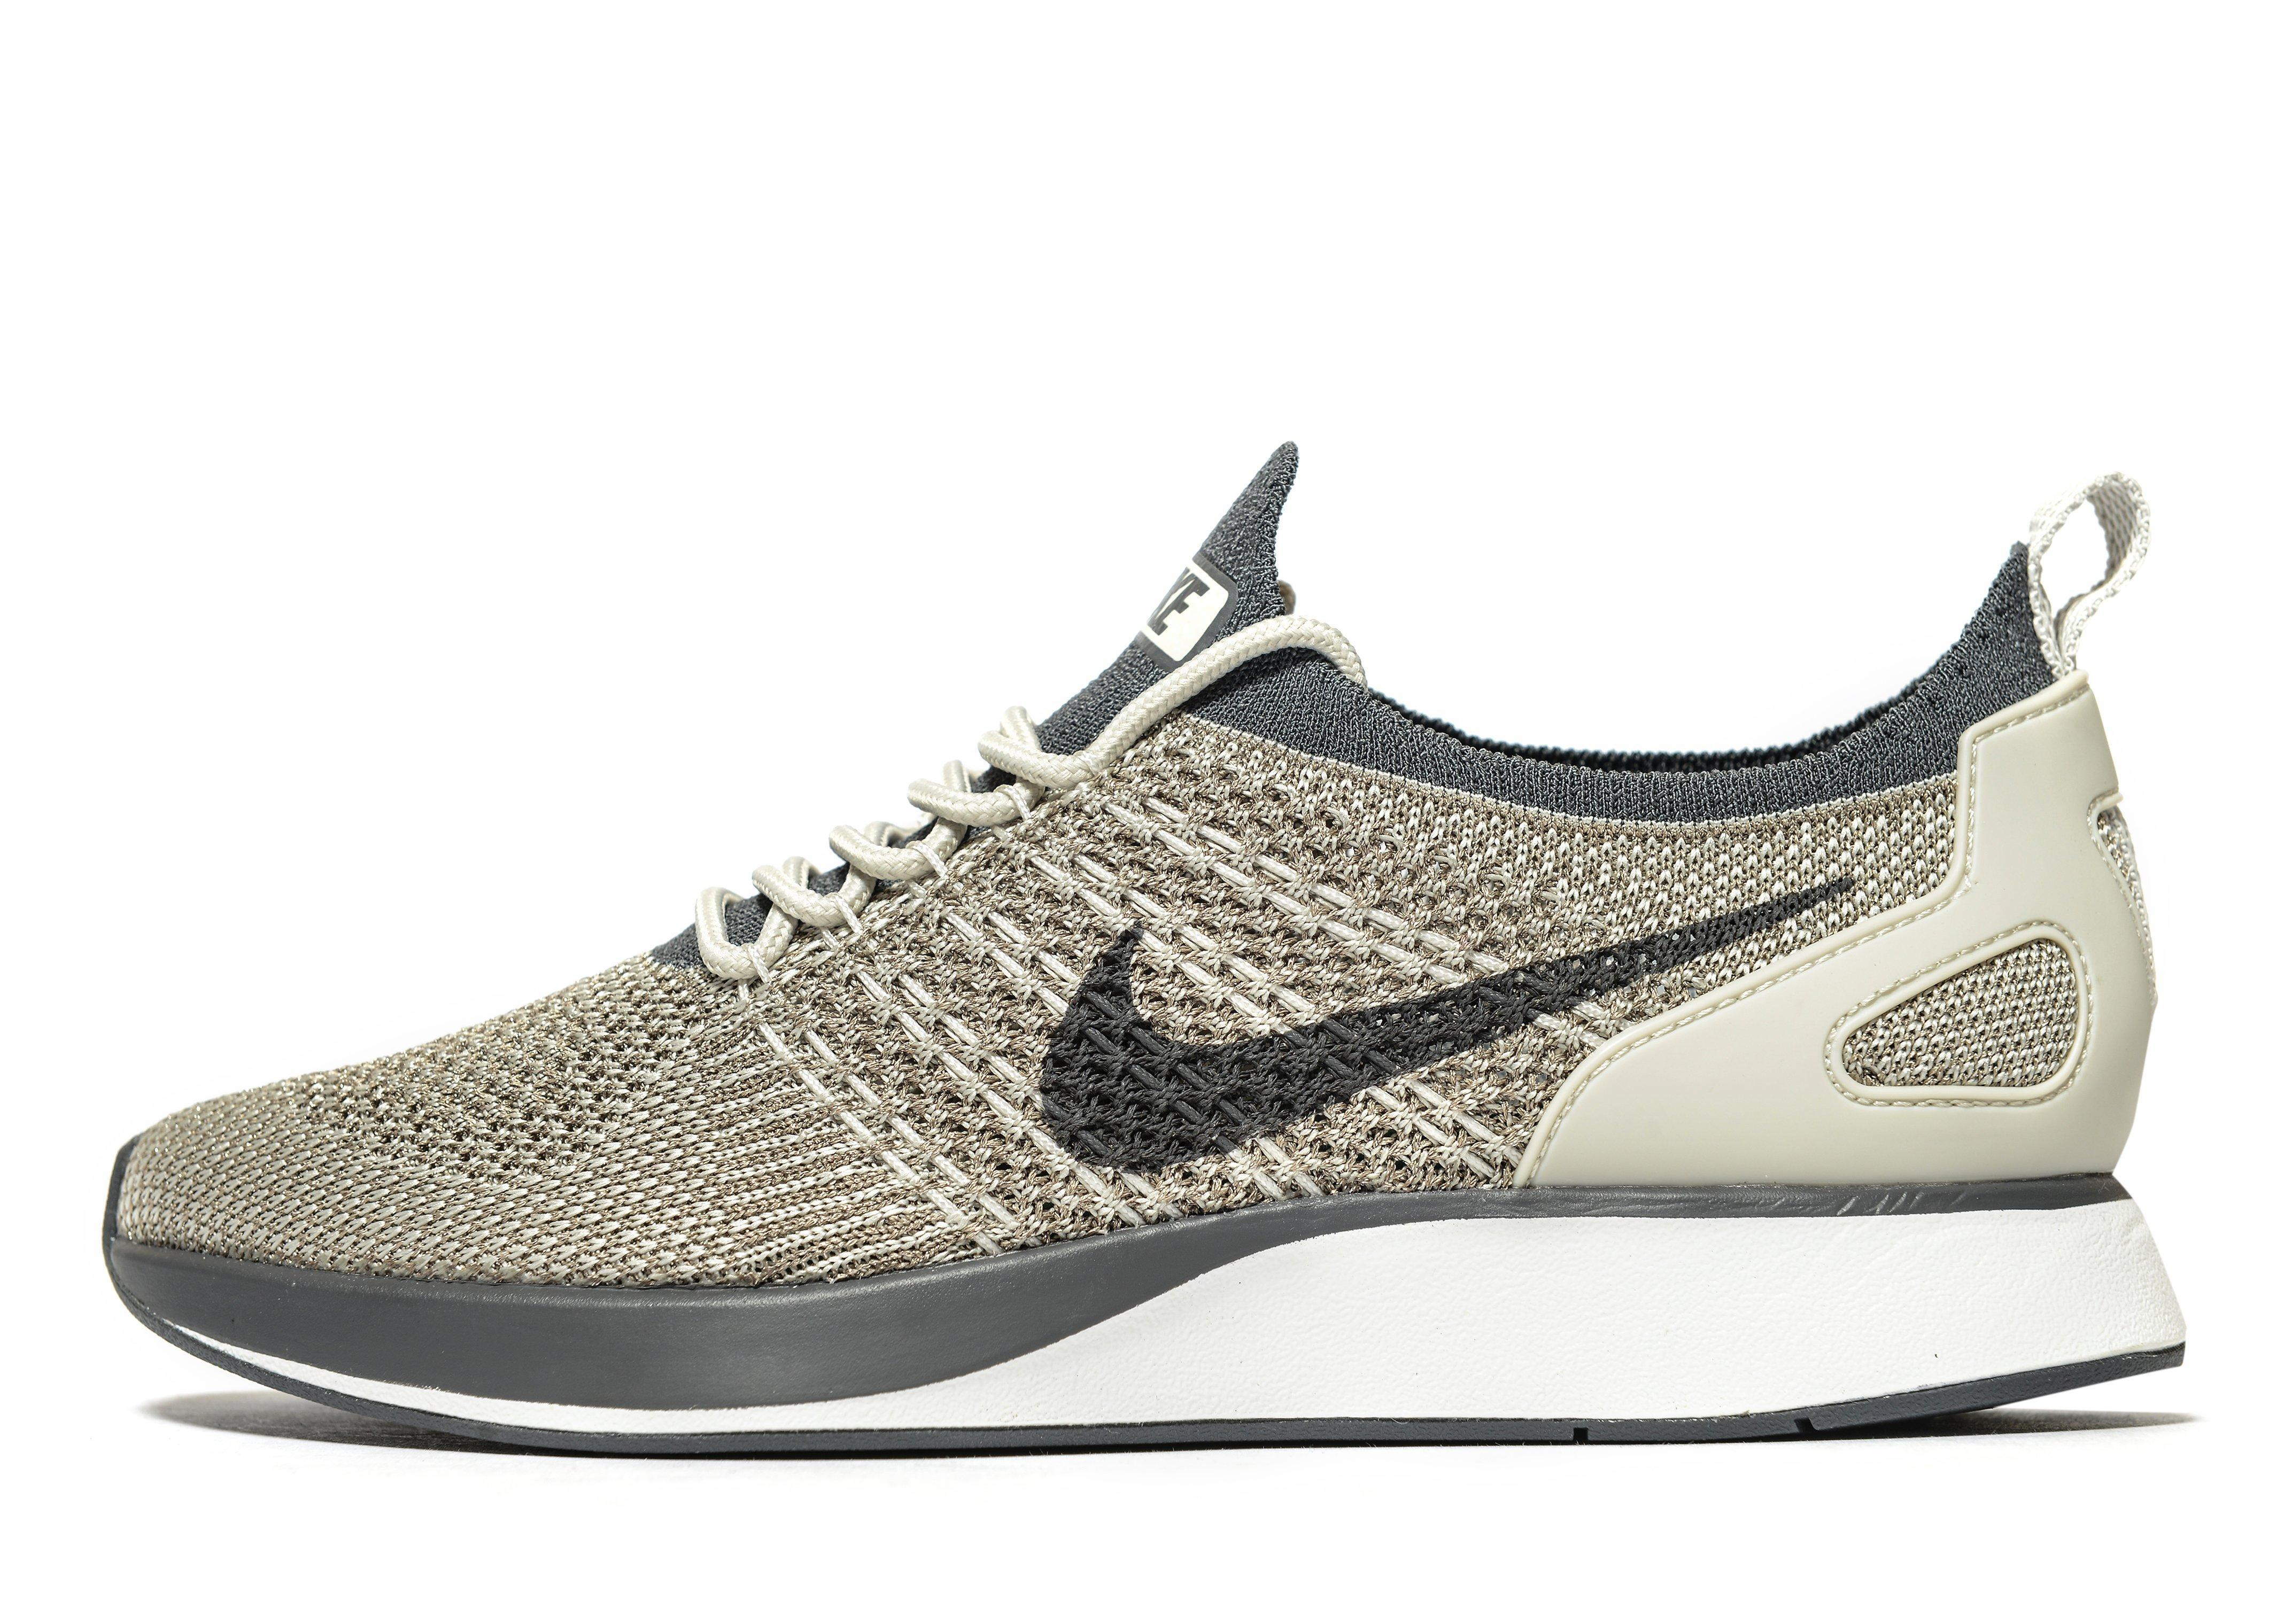 low priced 5f384 237c5 ... canada gallery. previously sold at jd sports mens nike flyknit 3e80f  eadc0 ...